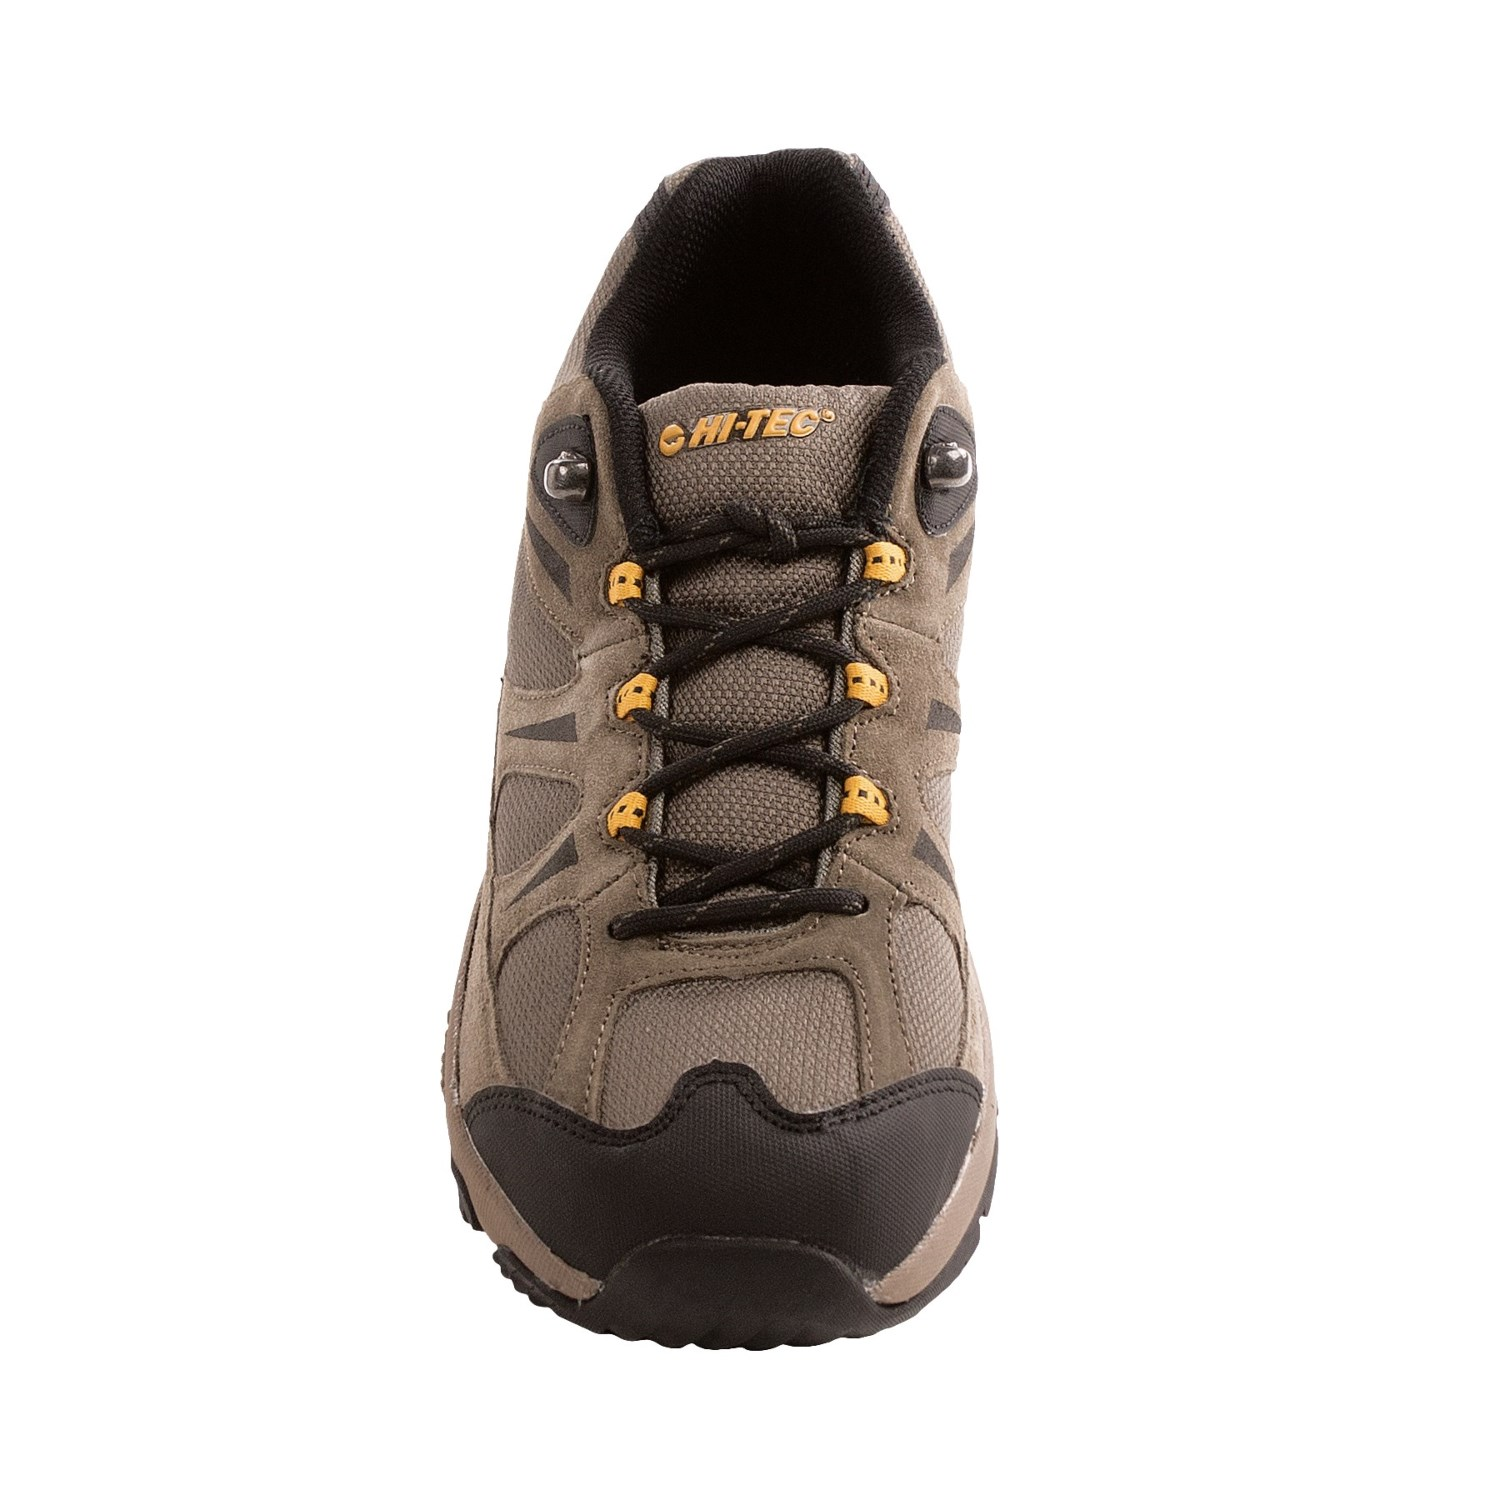 Buy Hiking Shoes Online Australia